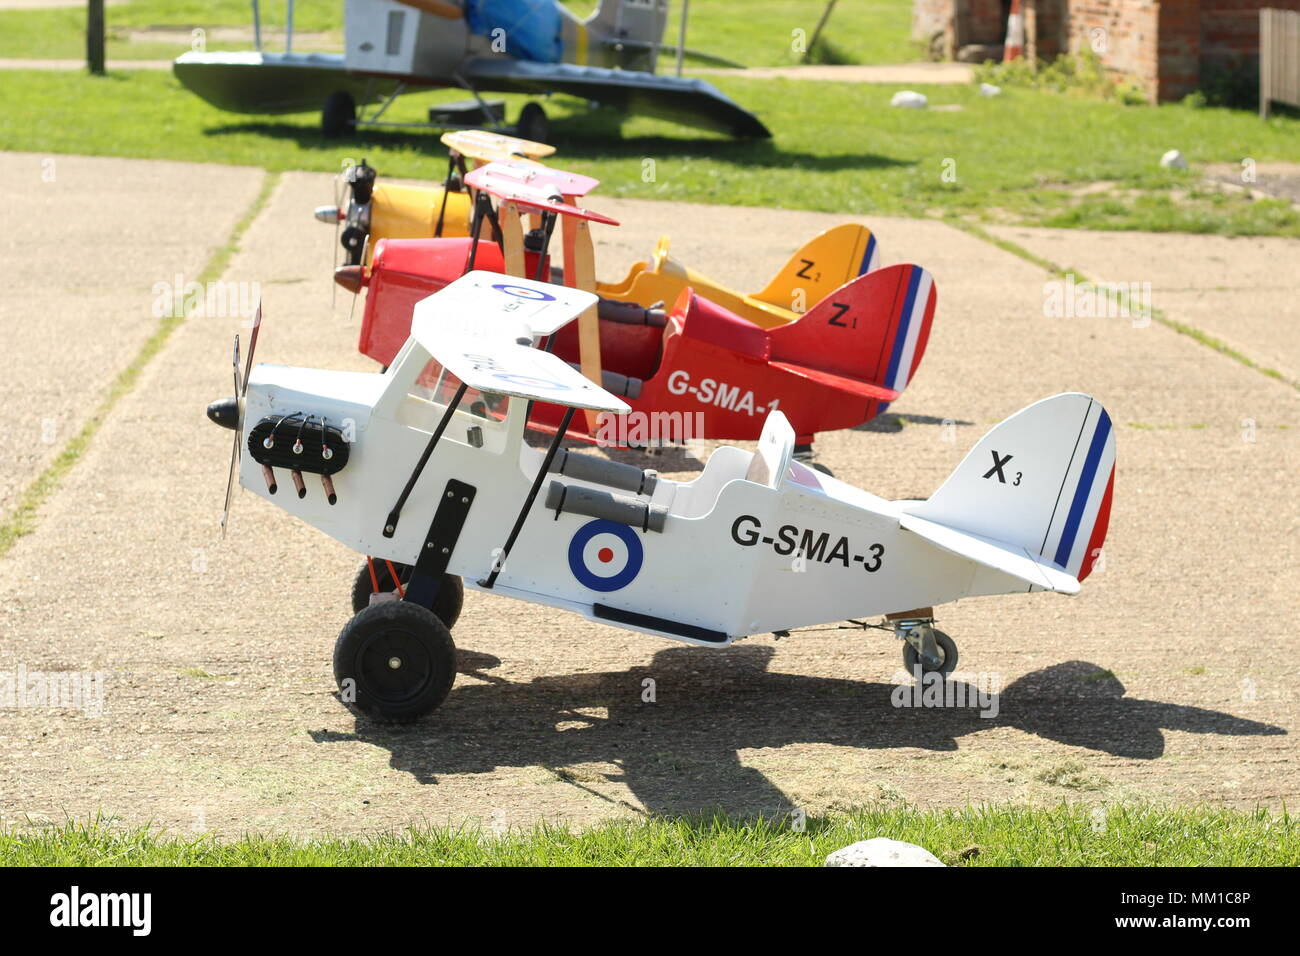 Children's Model Aircraft for recreational purposes, at Stow Maries Great War Aerodrome, Purleigh, Essex, Britain. Stock Photo